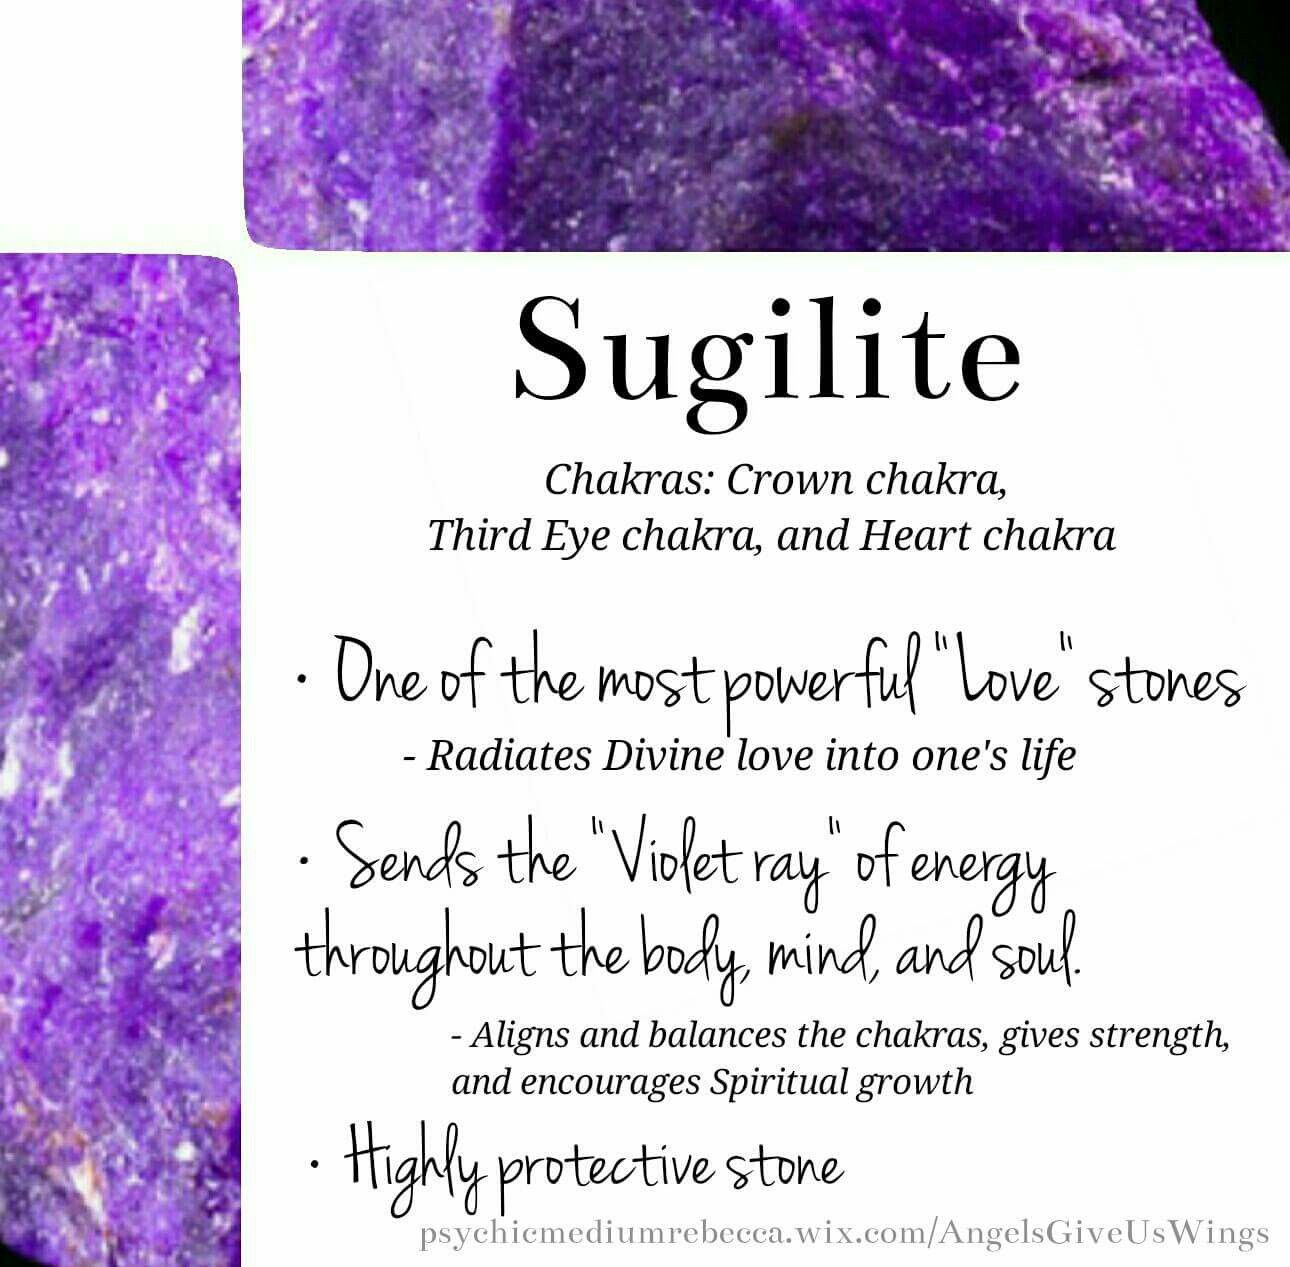 Sugilite properties and meaning photos crystal information - Sugilite Crystal Meaning